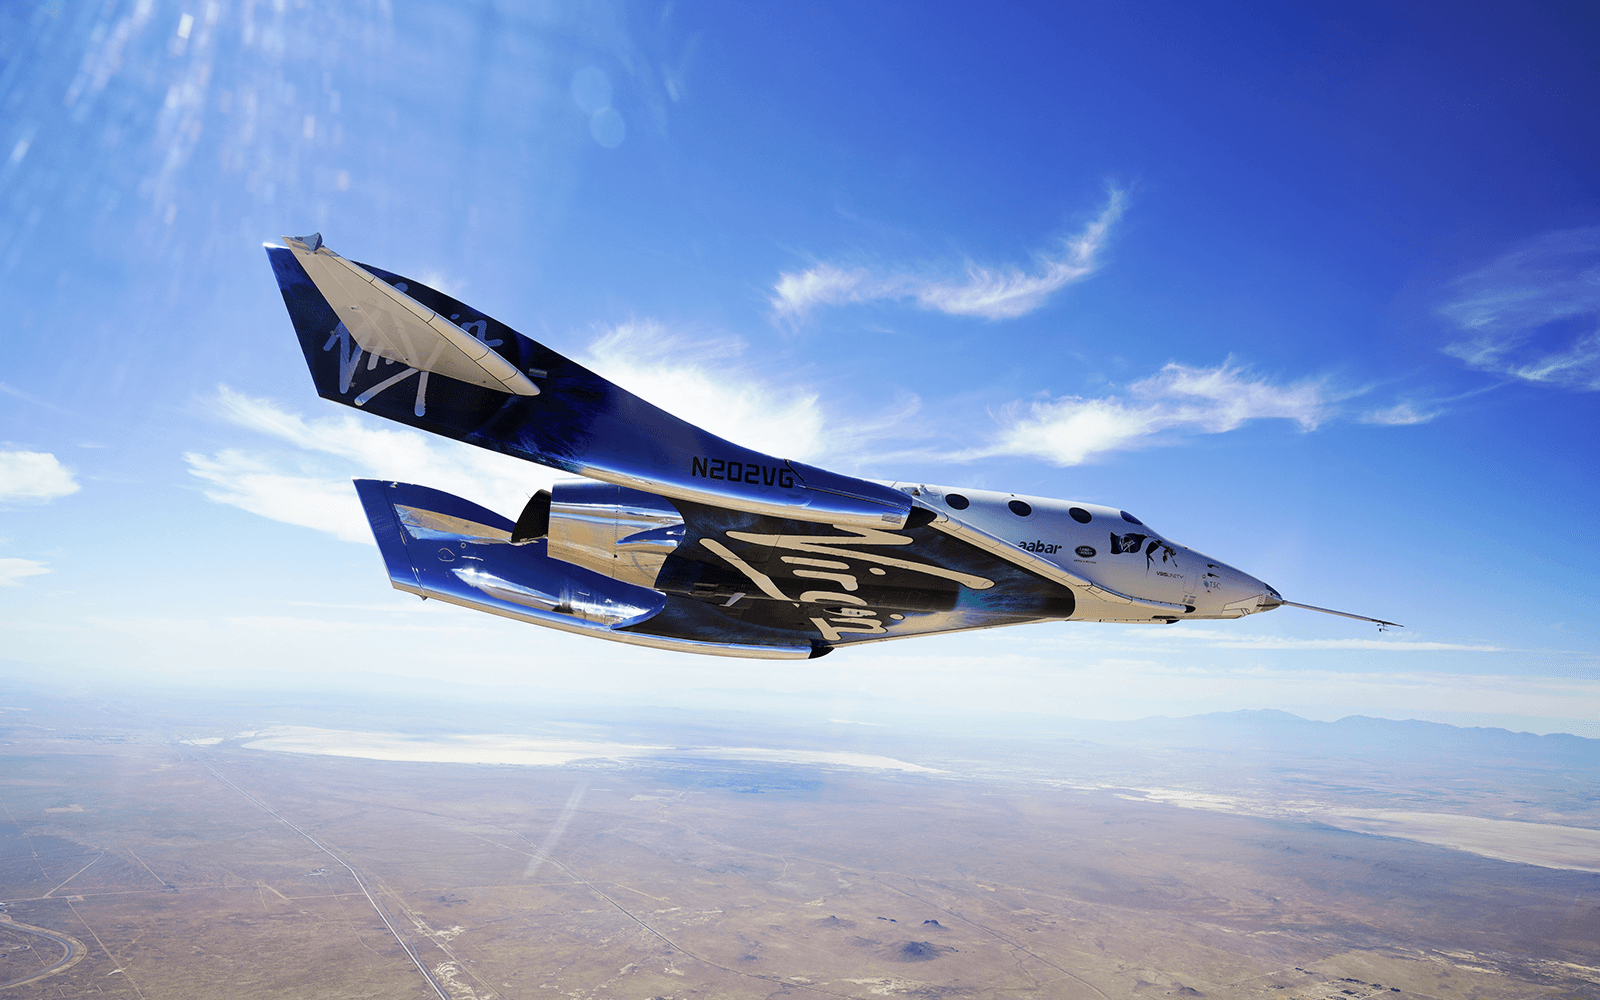 VSS Unity gliding through the sky